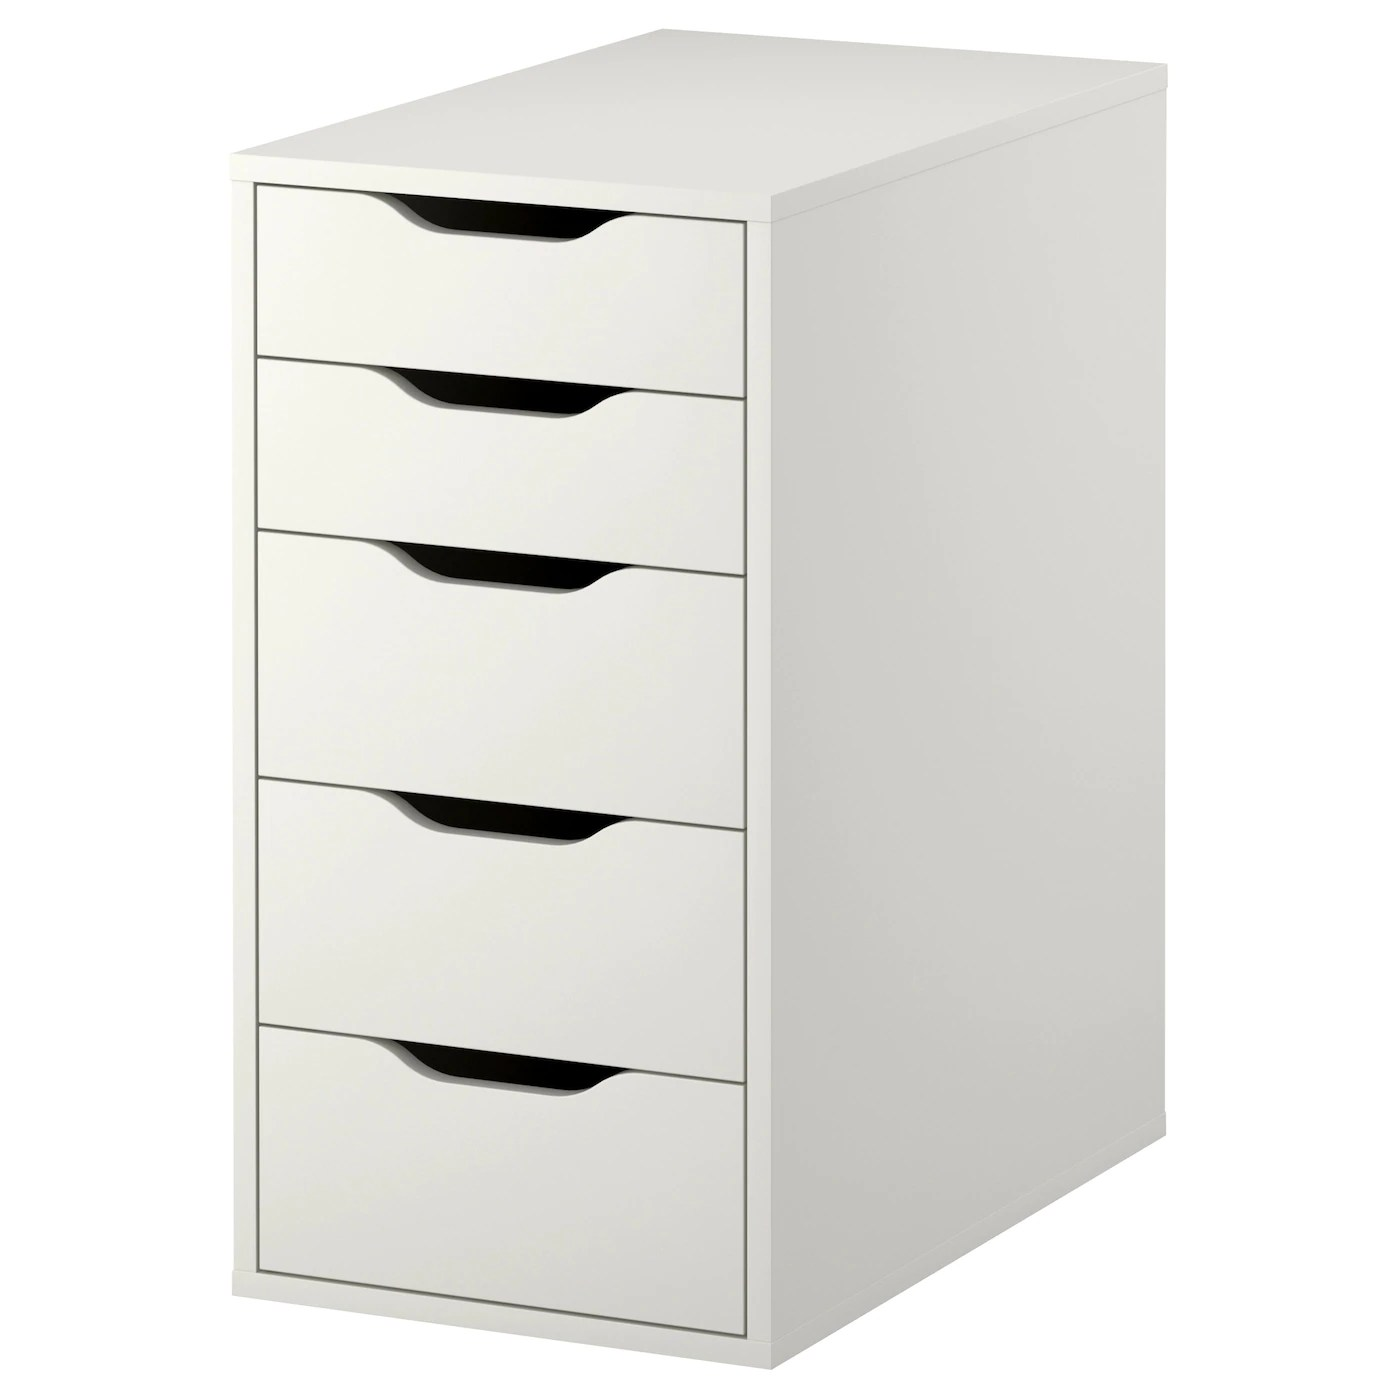 Drawer Units Alex Drawer Unit White 36 X 70 Cm Ikea